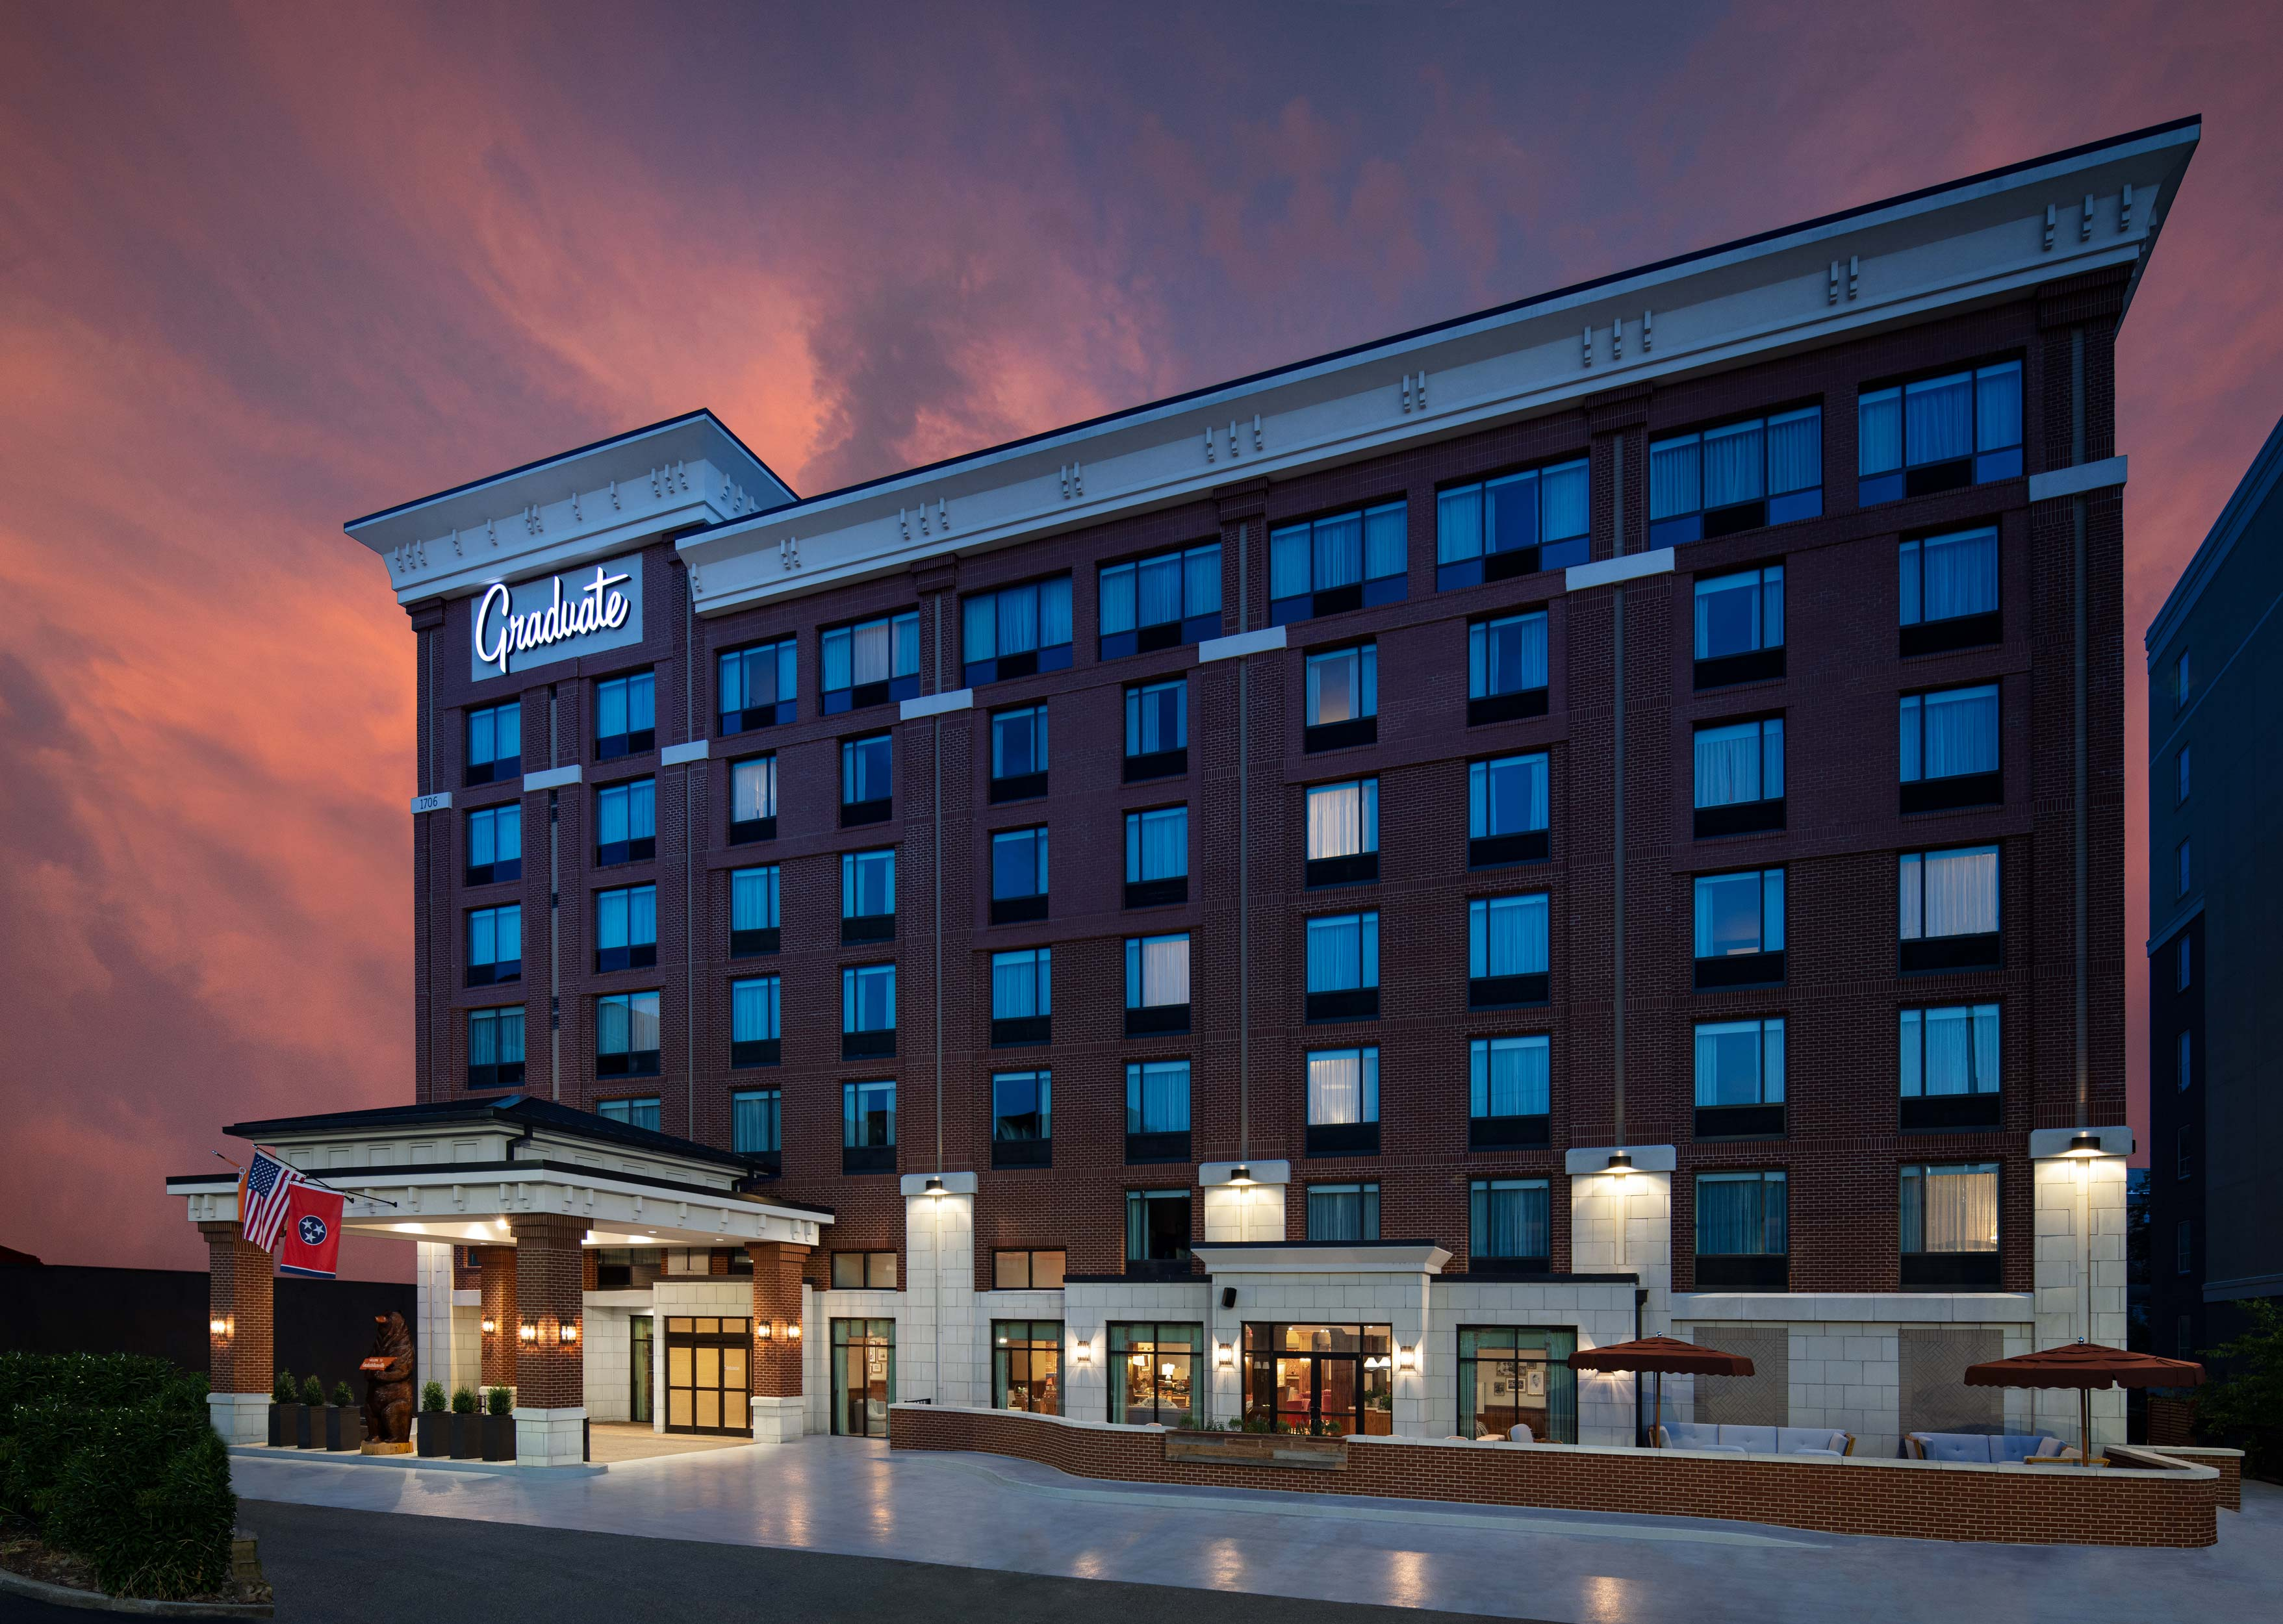 Exterior Dusk Photography of Graduate Hotel In Knoxville Tennessee with Pink Sky